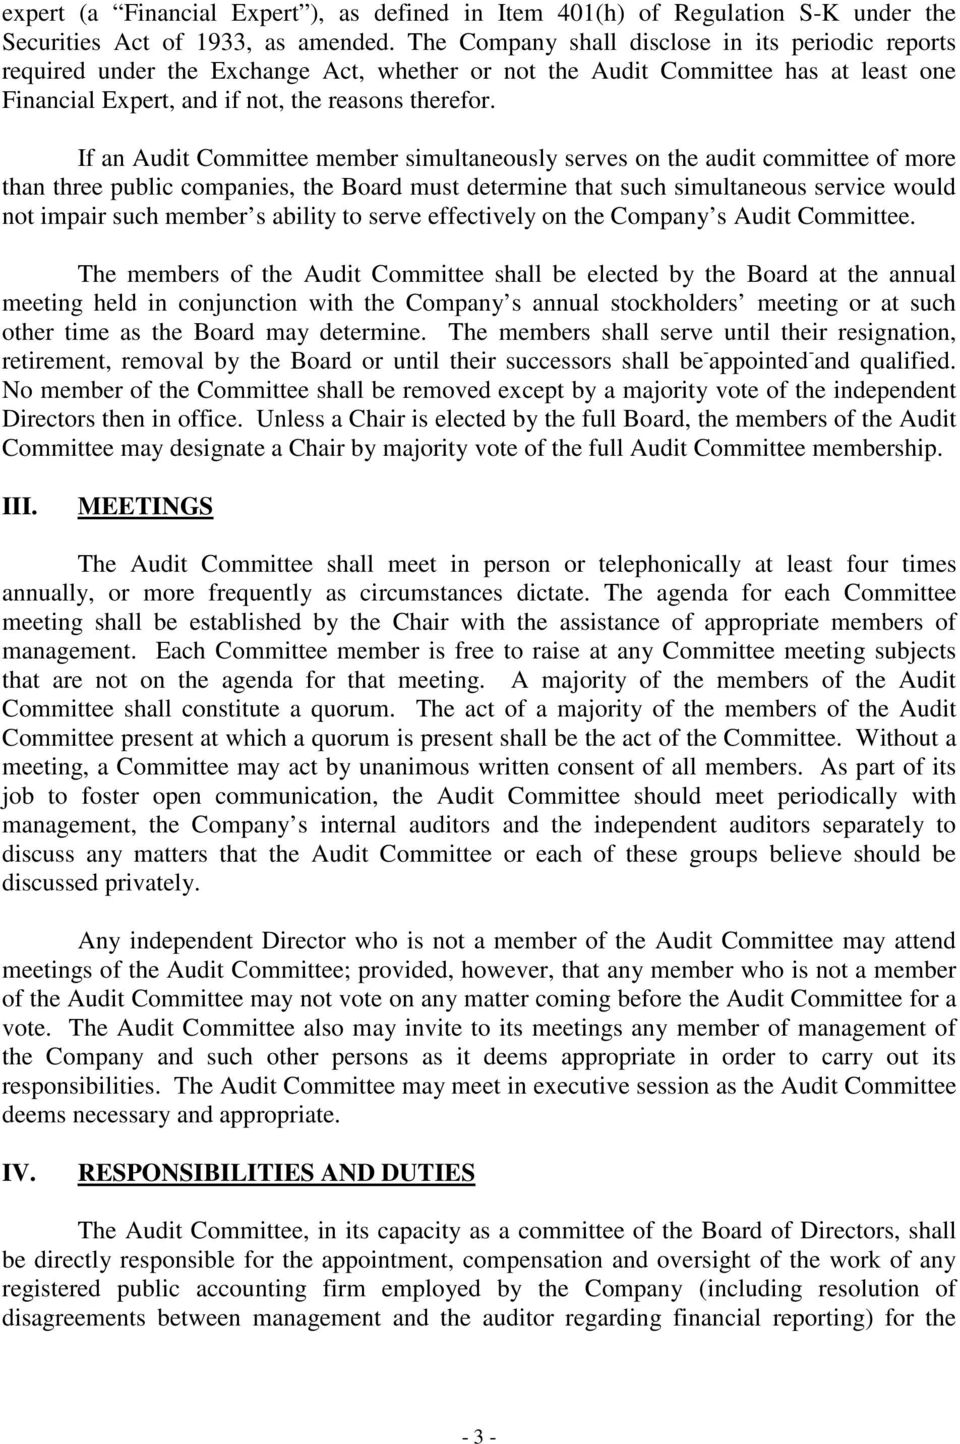 If an Audit Committee member simultaneously serves on the audit committee of more than three public companies, the Board must determine that such simultaneous service would not impair such member s